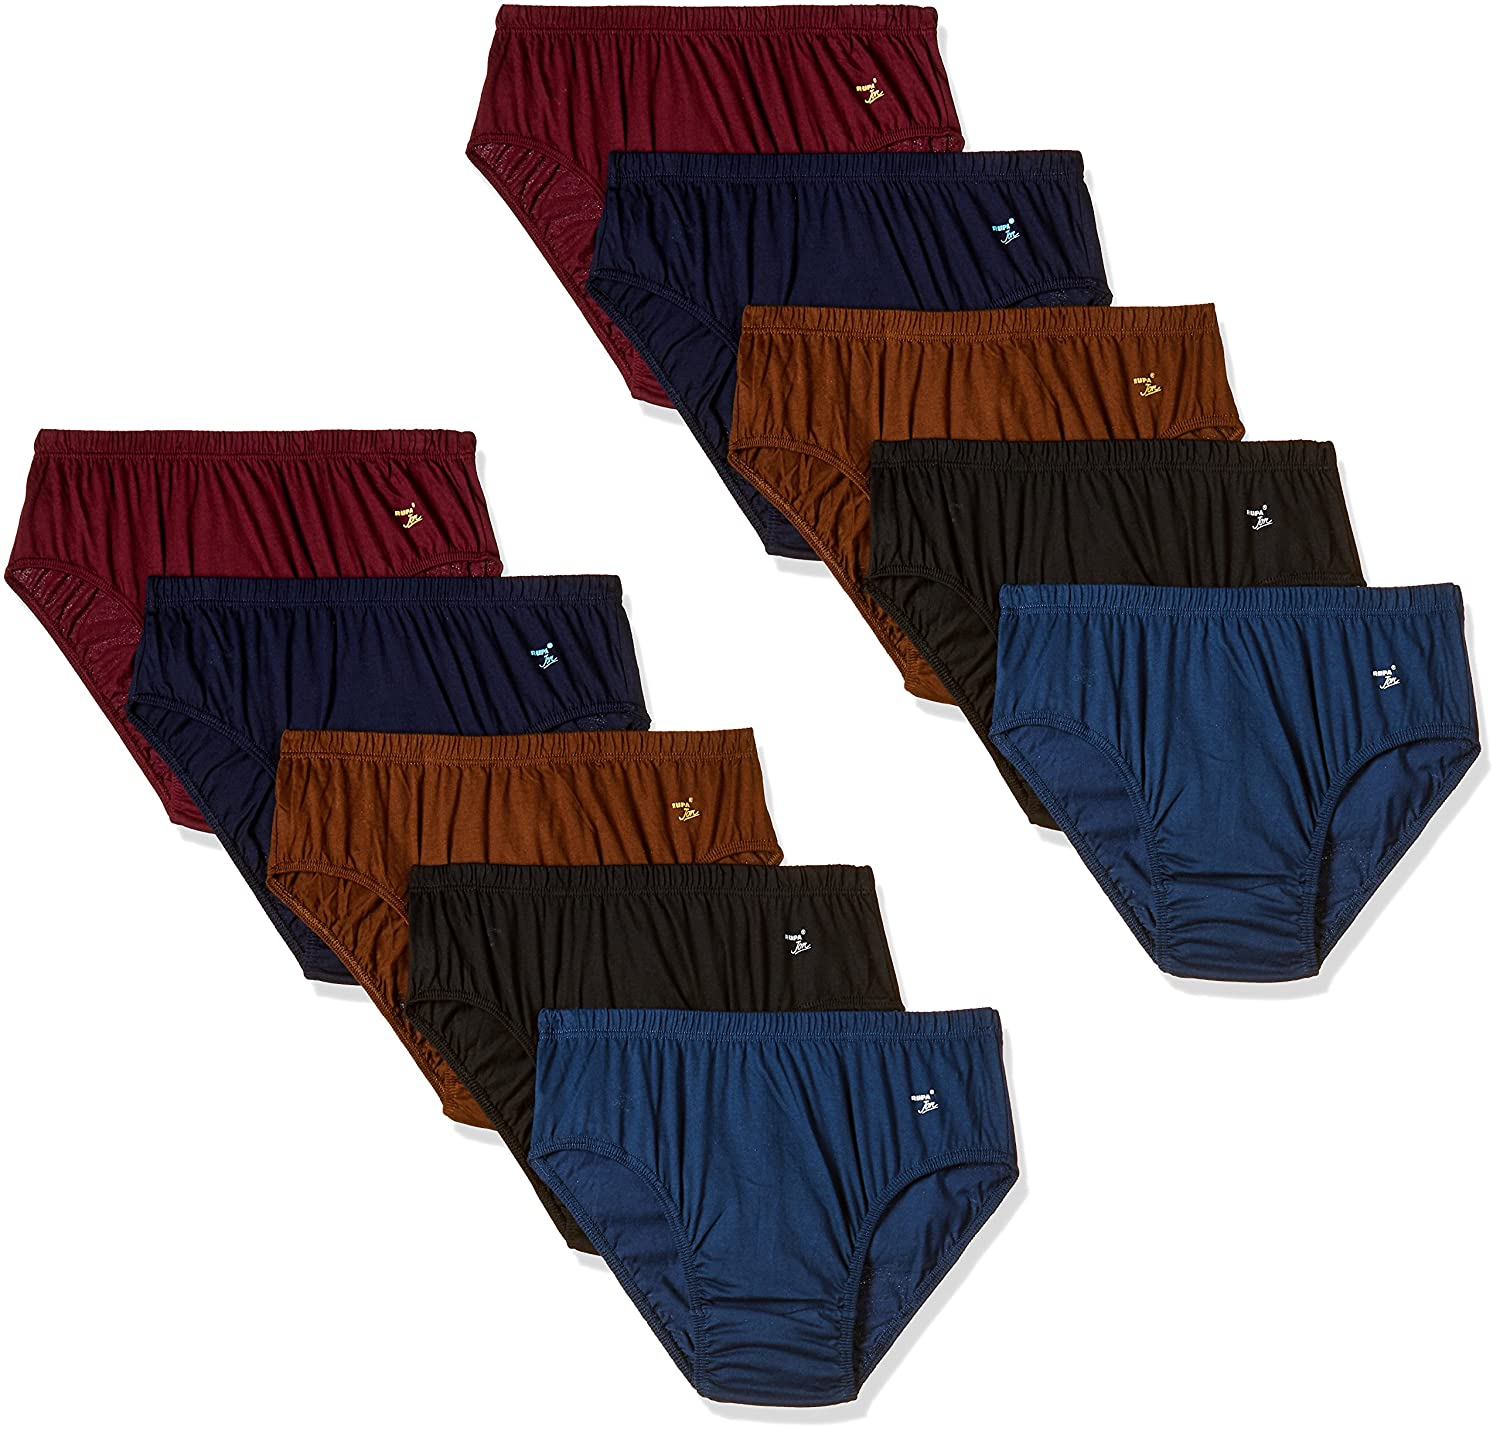 37% Off : Rupa Jon Women's Cotton Panty (Pack of 10) At Rs.312/- Only. [MRP – Rs.499/-]